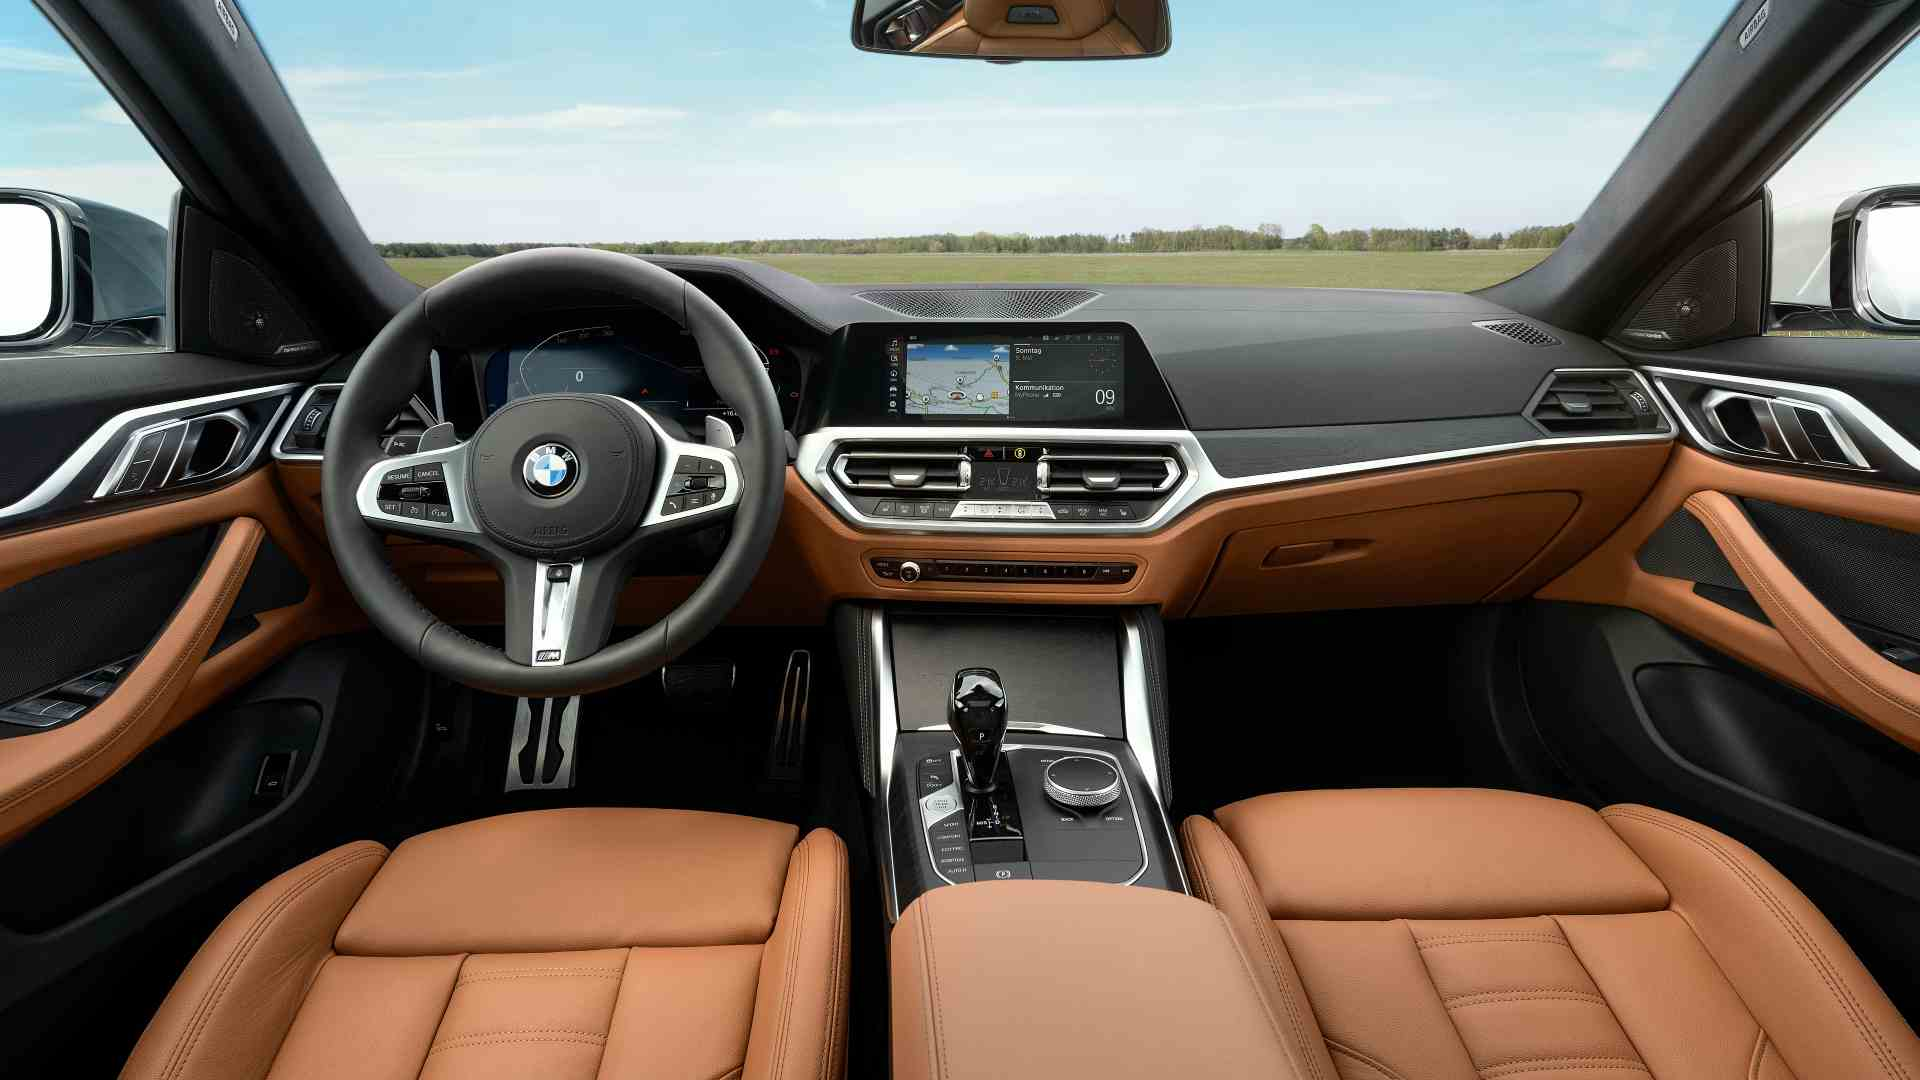 Inside, the new 4 Series Gran Coupe gets a 10.25-inch infotainment display with a 12.3-inch digital instruments display. Image: BMW